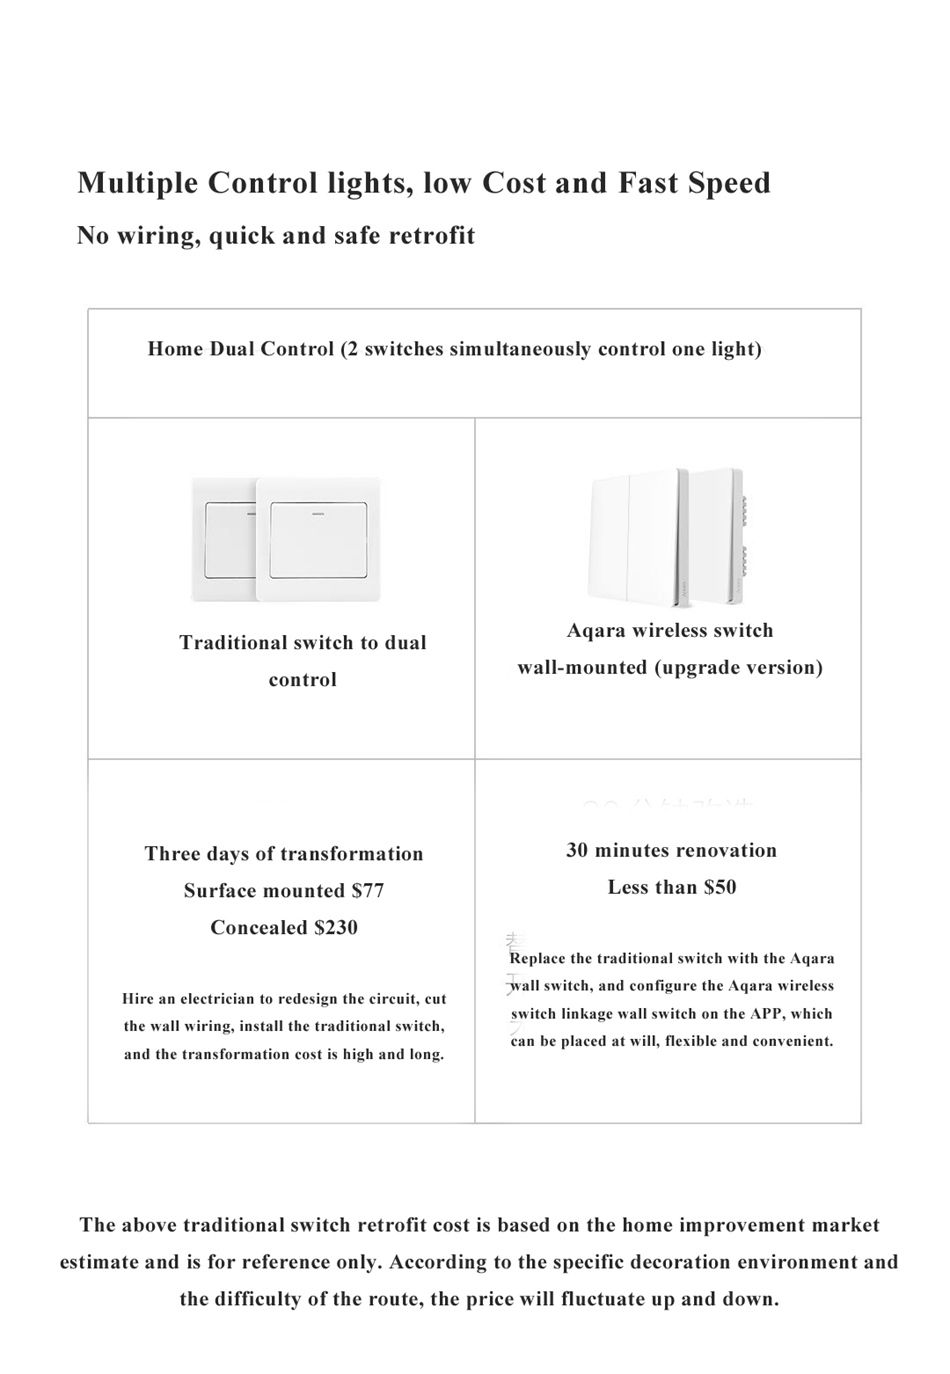 2018 Xiaomi Aqara Upgrade Wireless Switch Double Button Key Smart Wiring A Light With Two Switches Version Compared To Olo